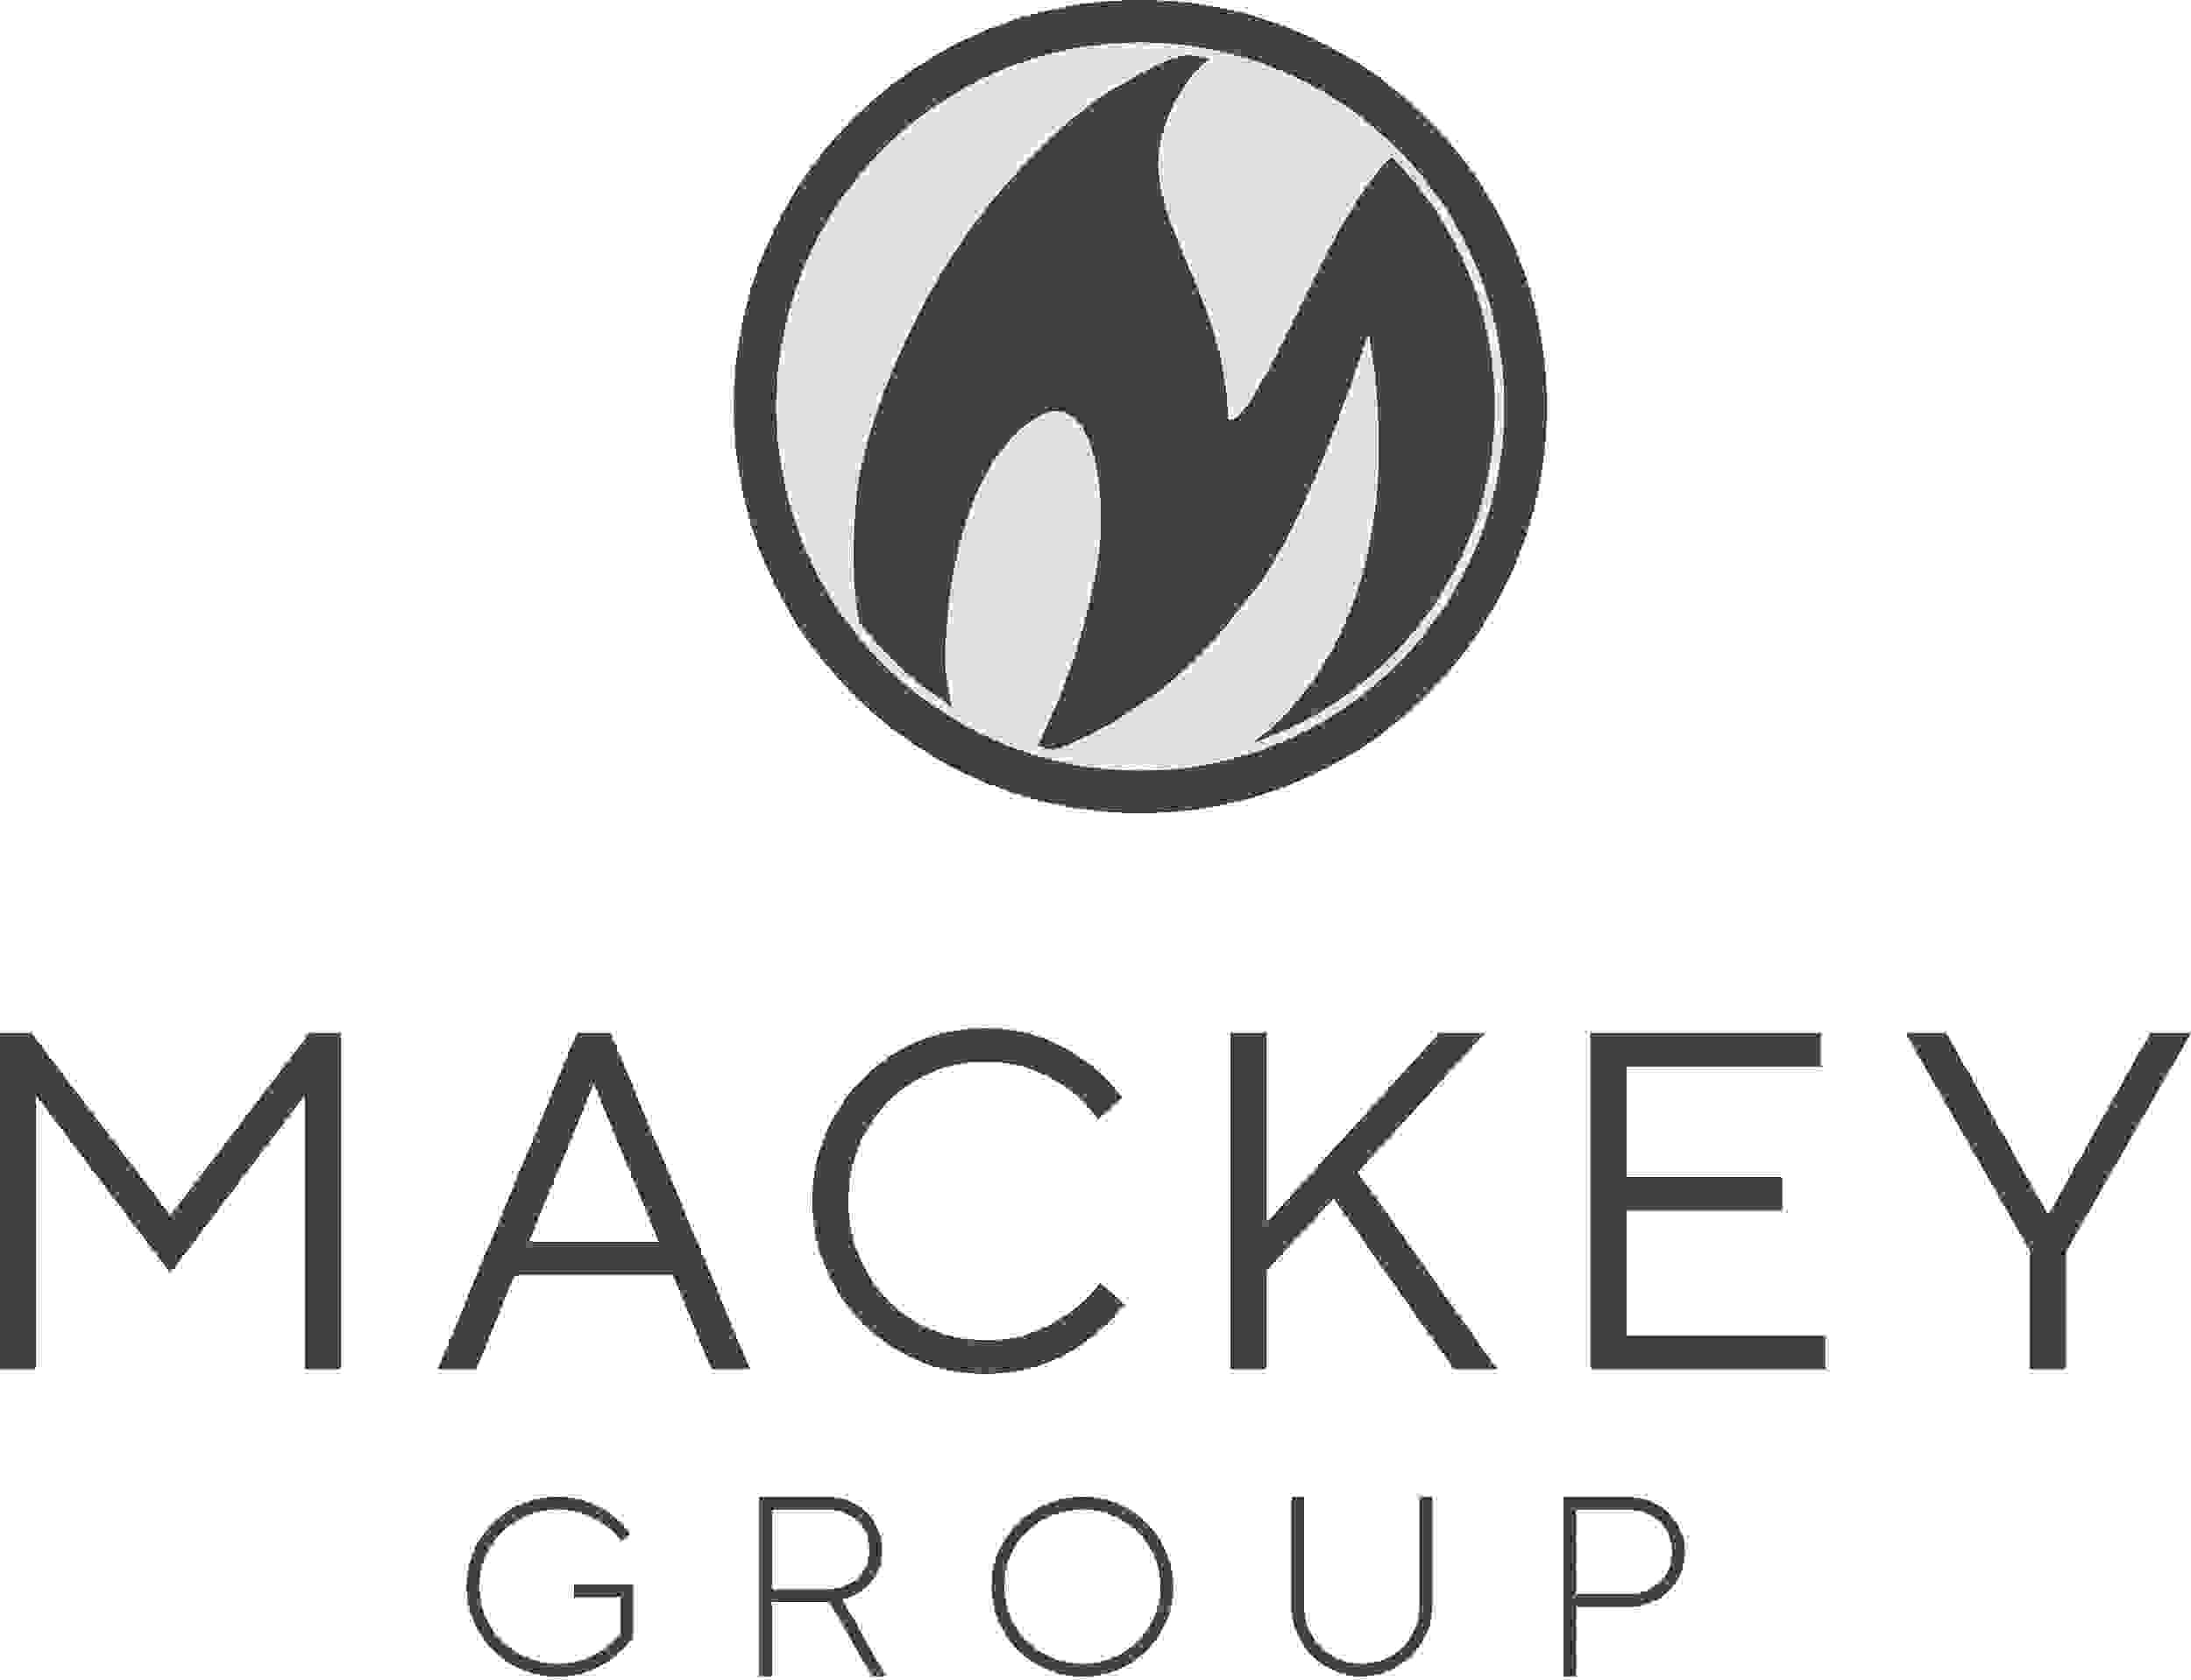 Mackey Group logo